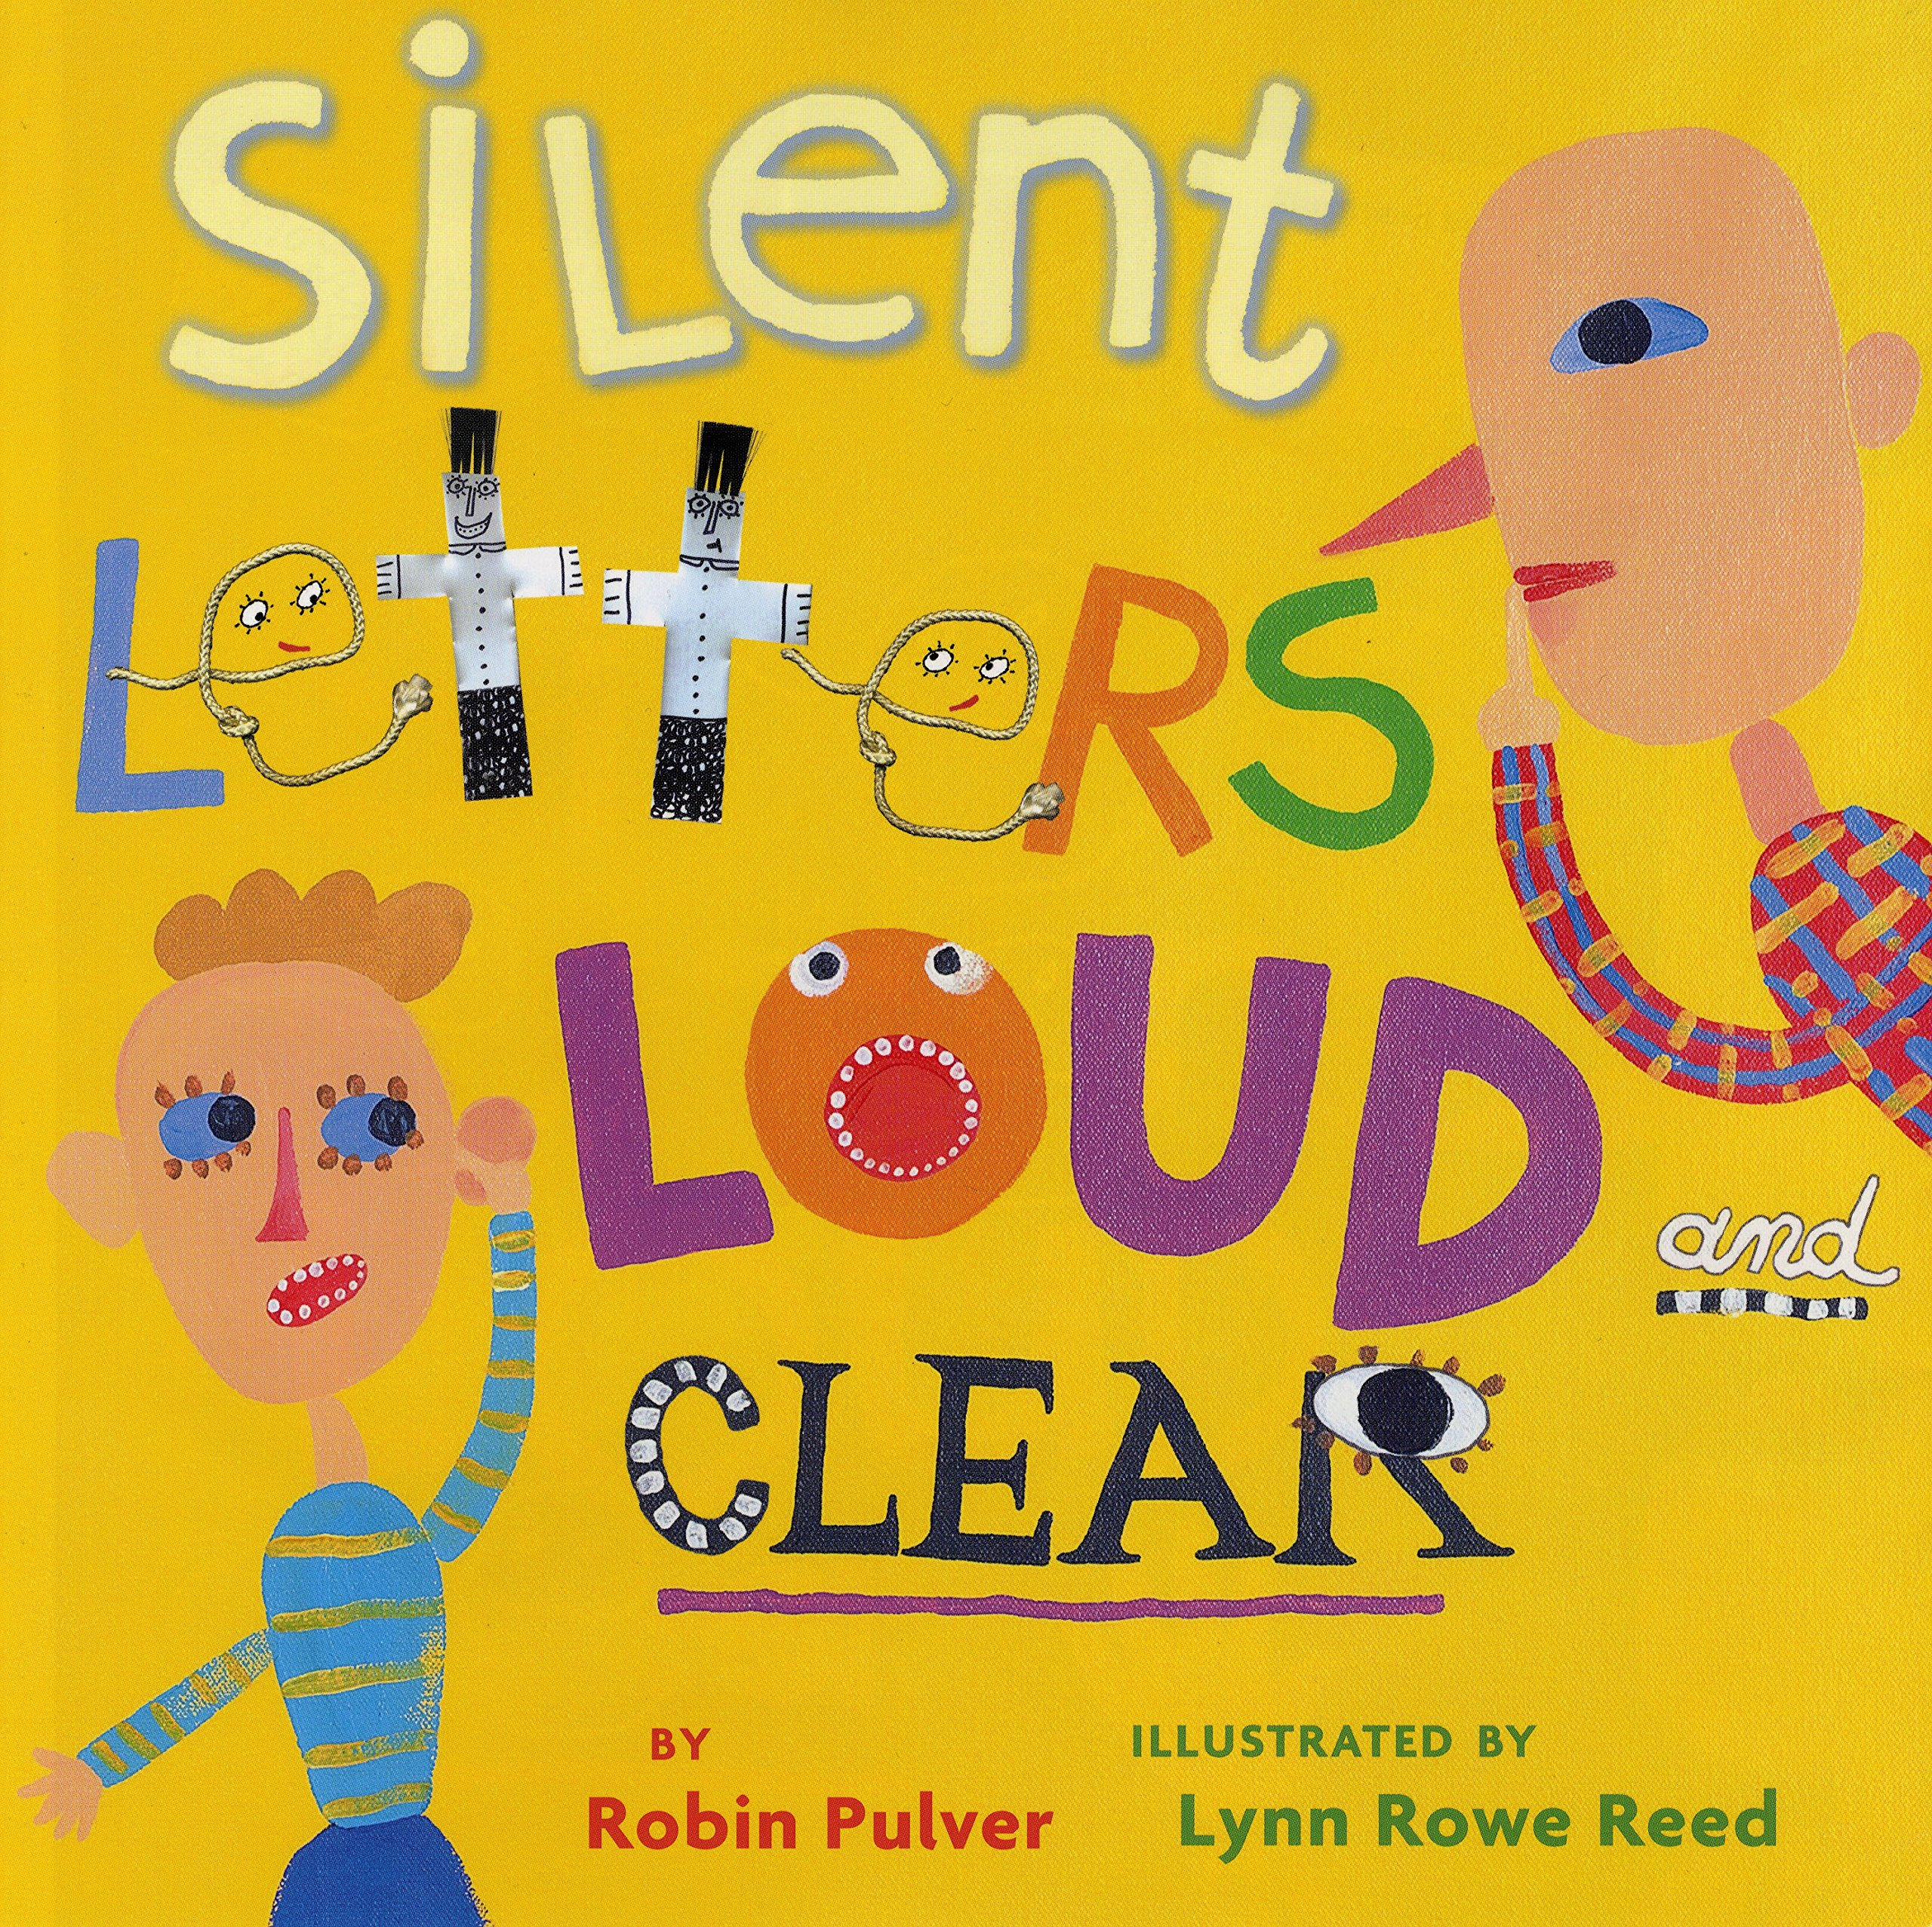 Download Silent Letters Loud and Clear pdf